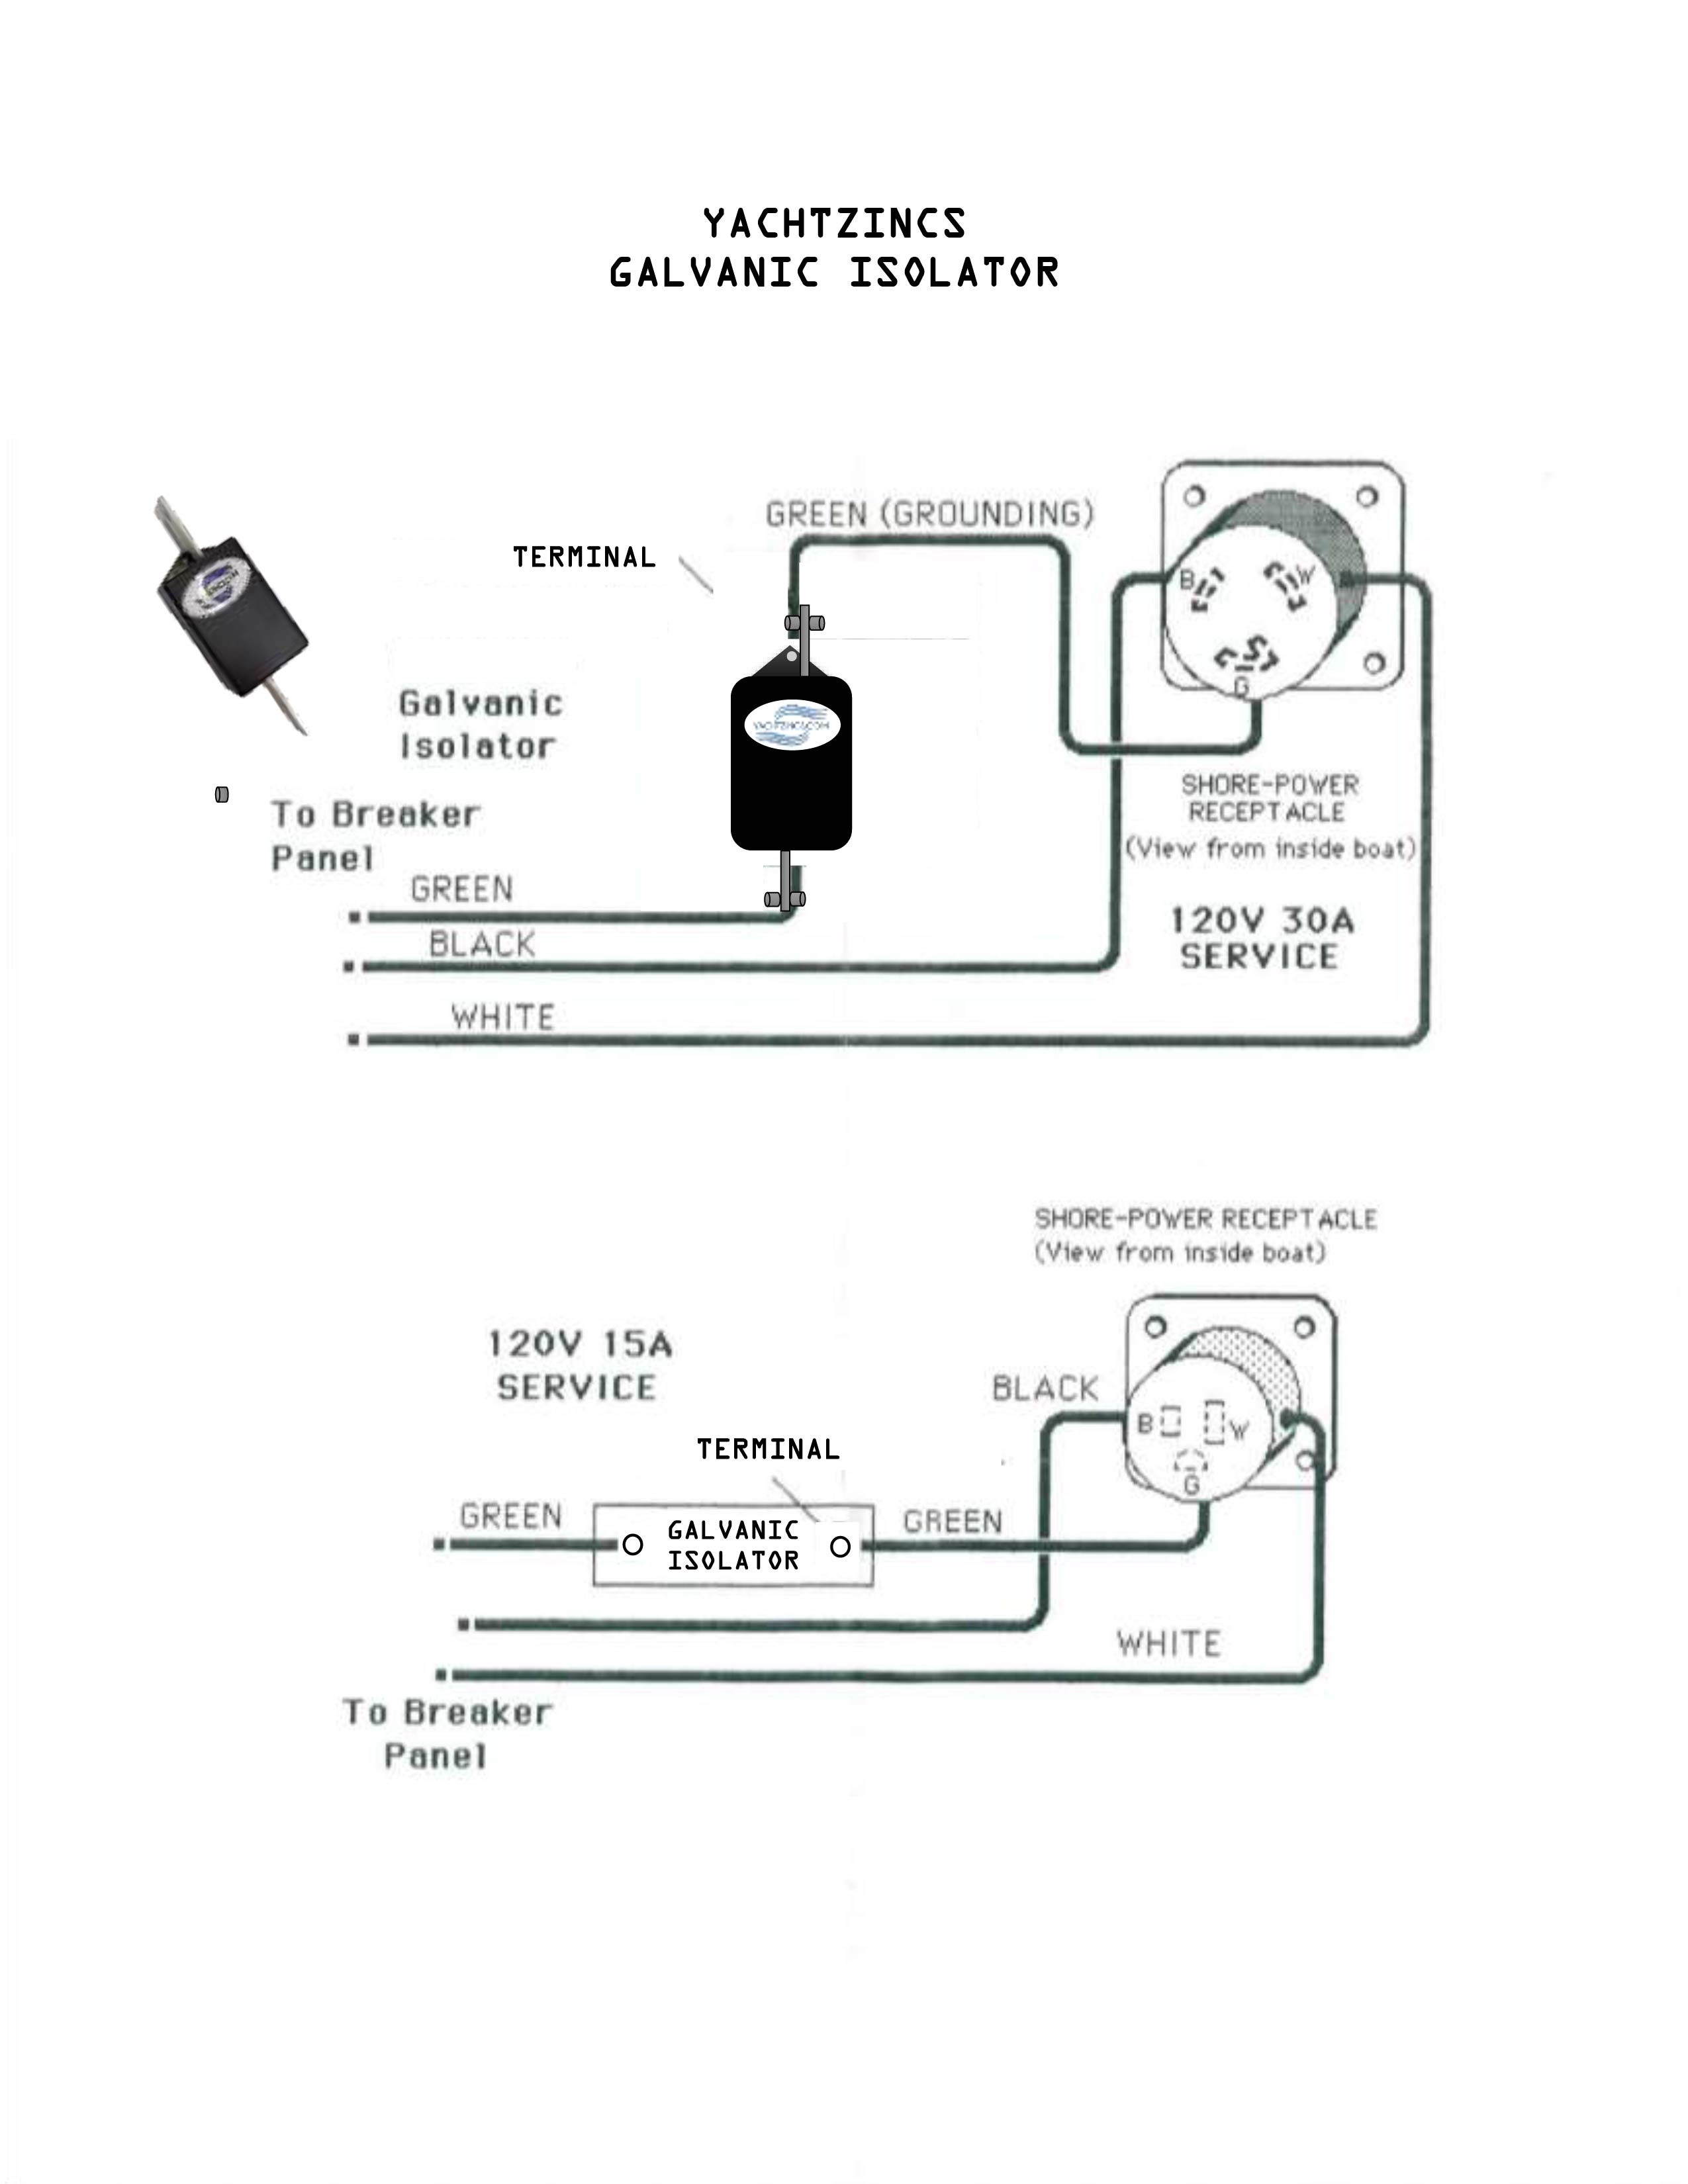 Galvanic Isolators can save the life of your anodes.(and your hair!)